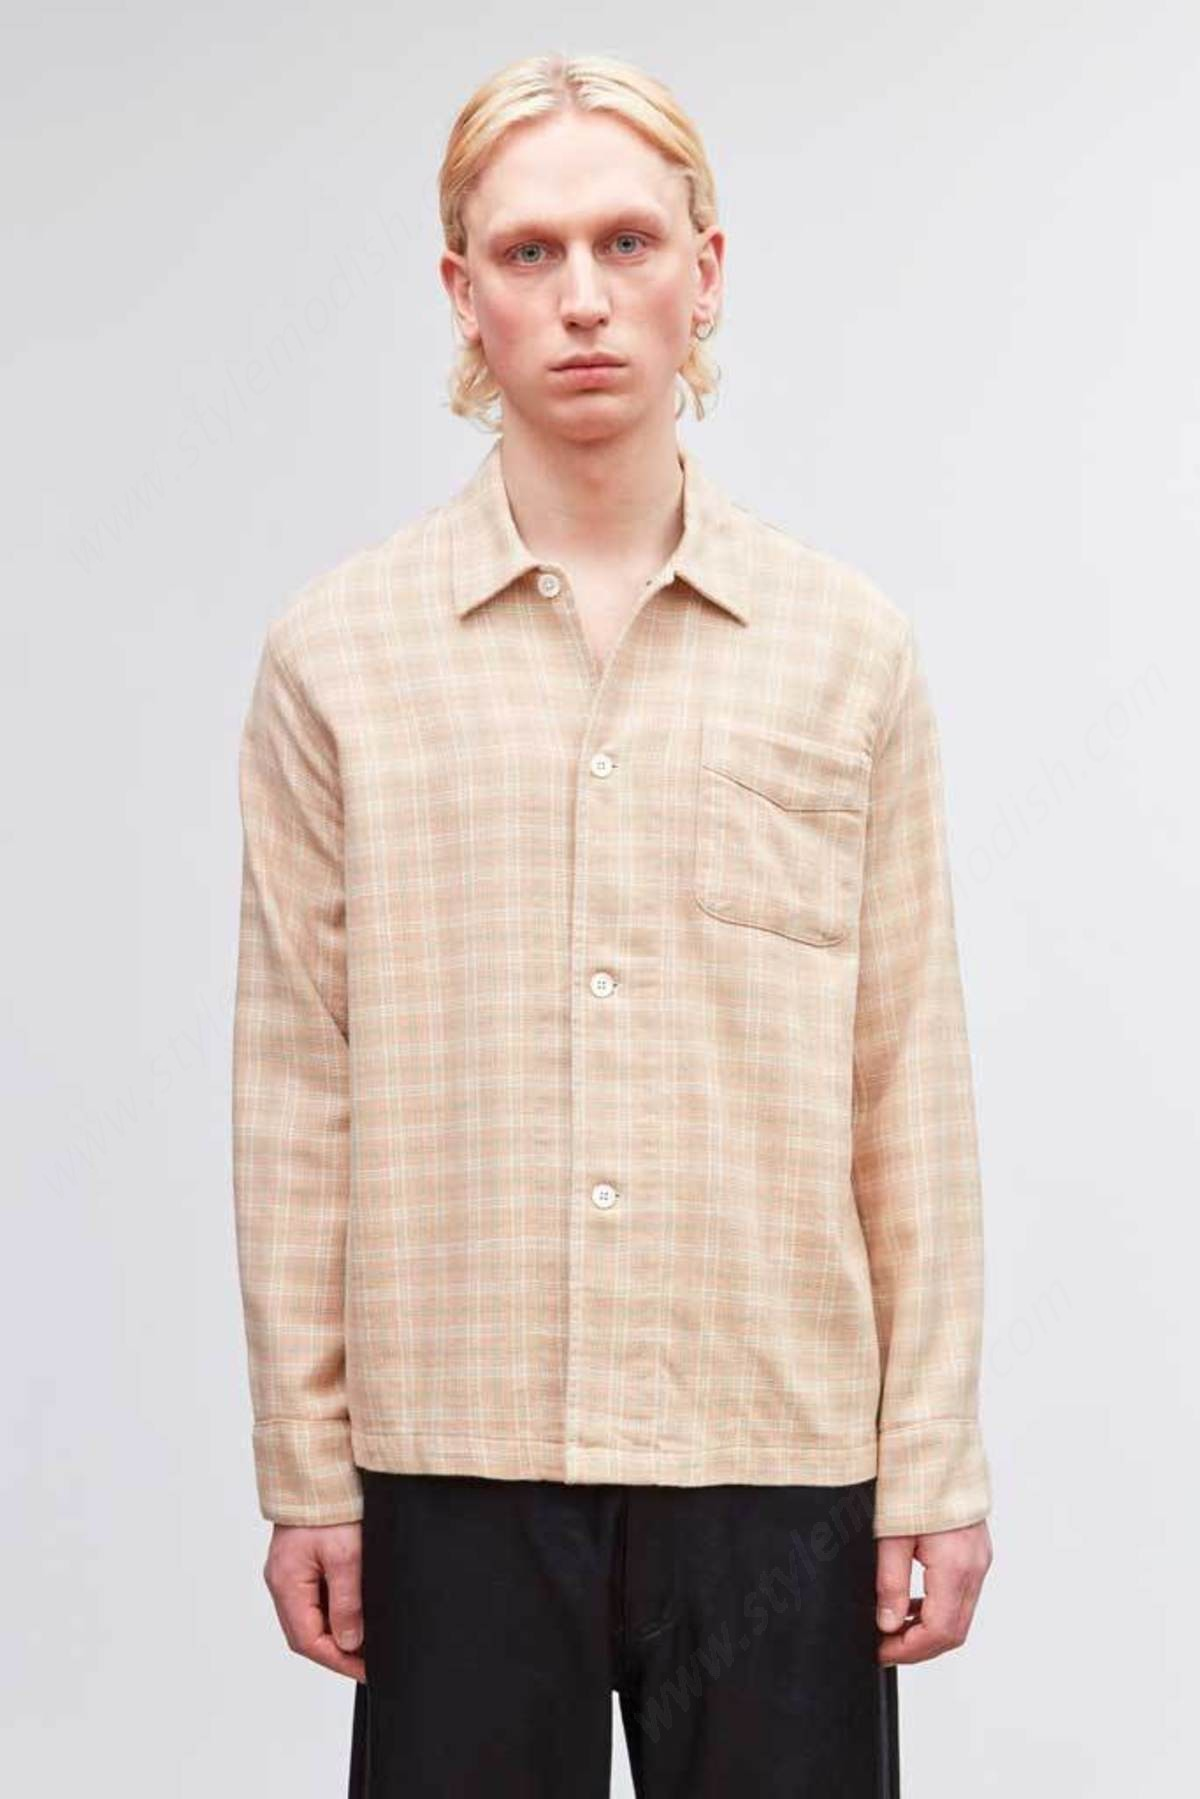 Men's Our Legacy Box Shirts - Pink Shadow Check - Men's Our Legacy Box Shirts - Pink Shadow Check